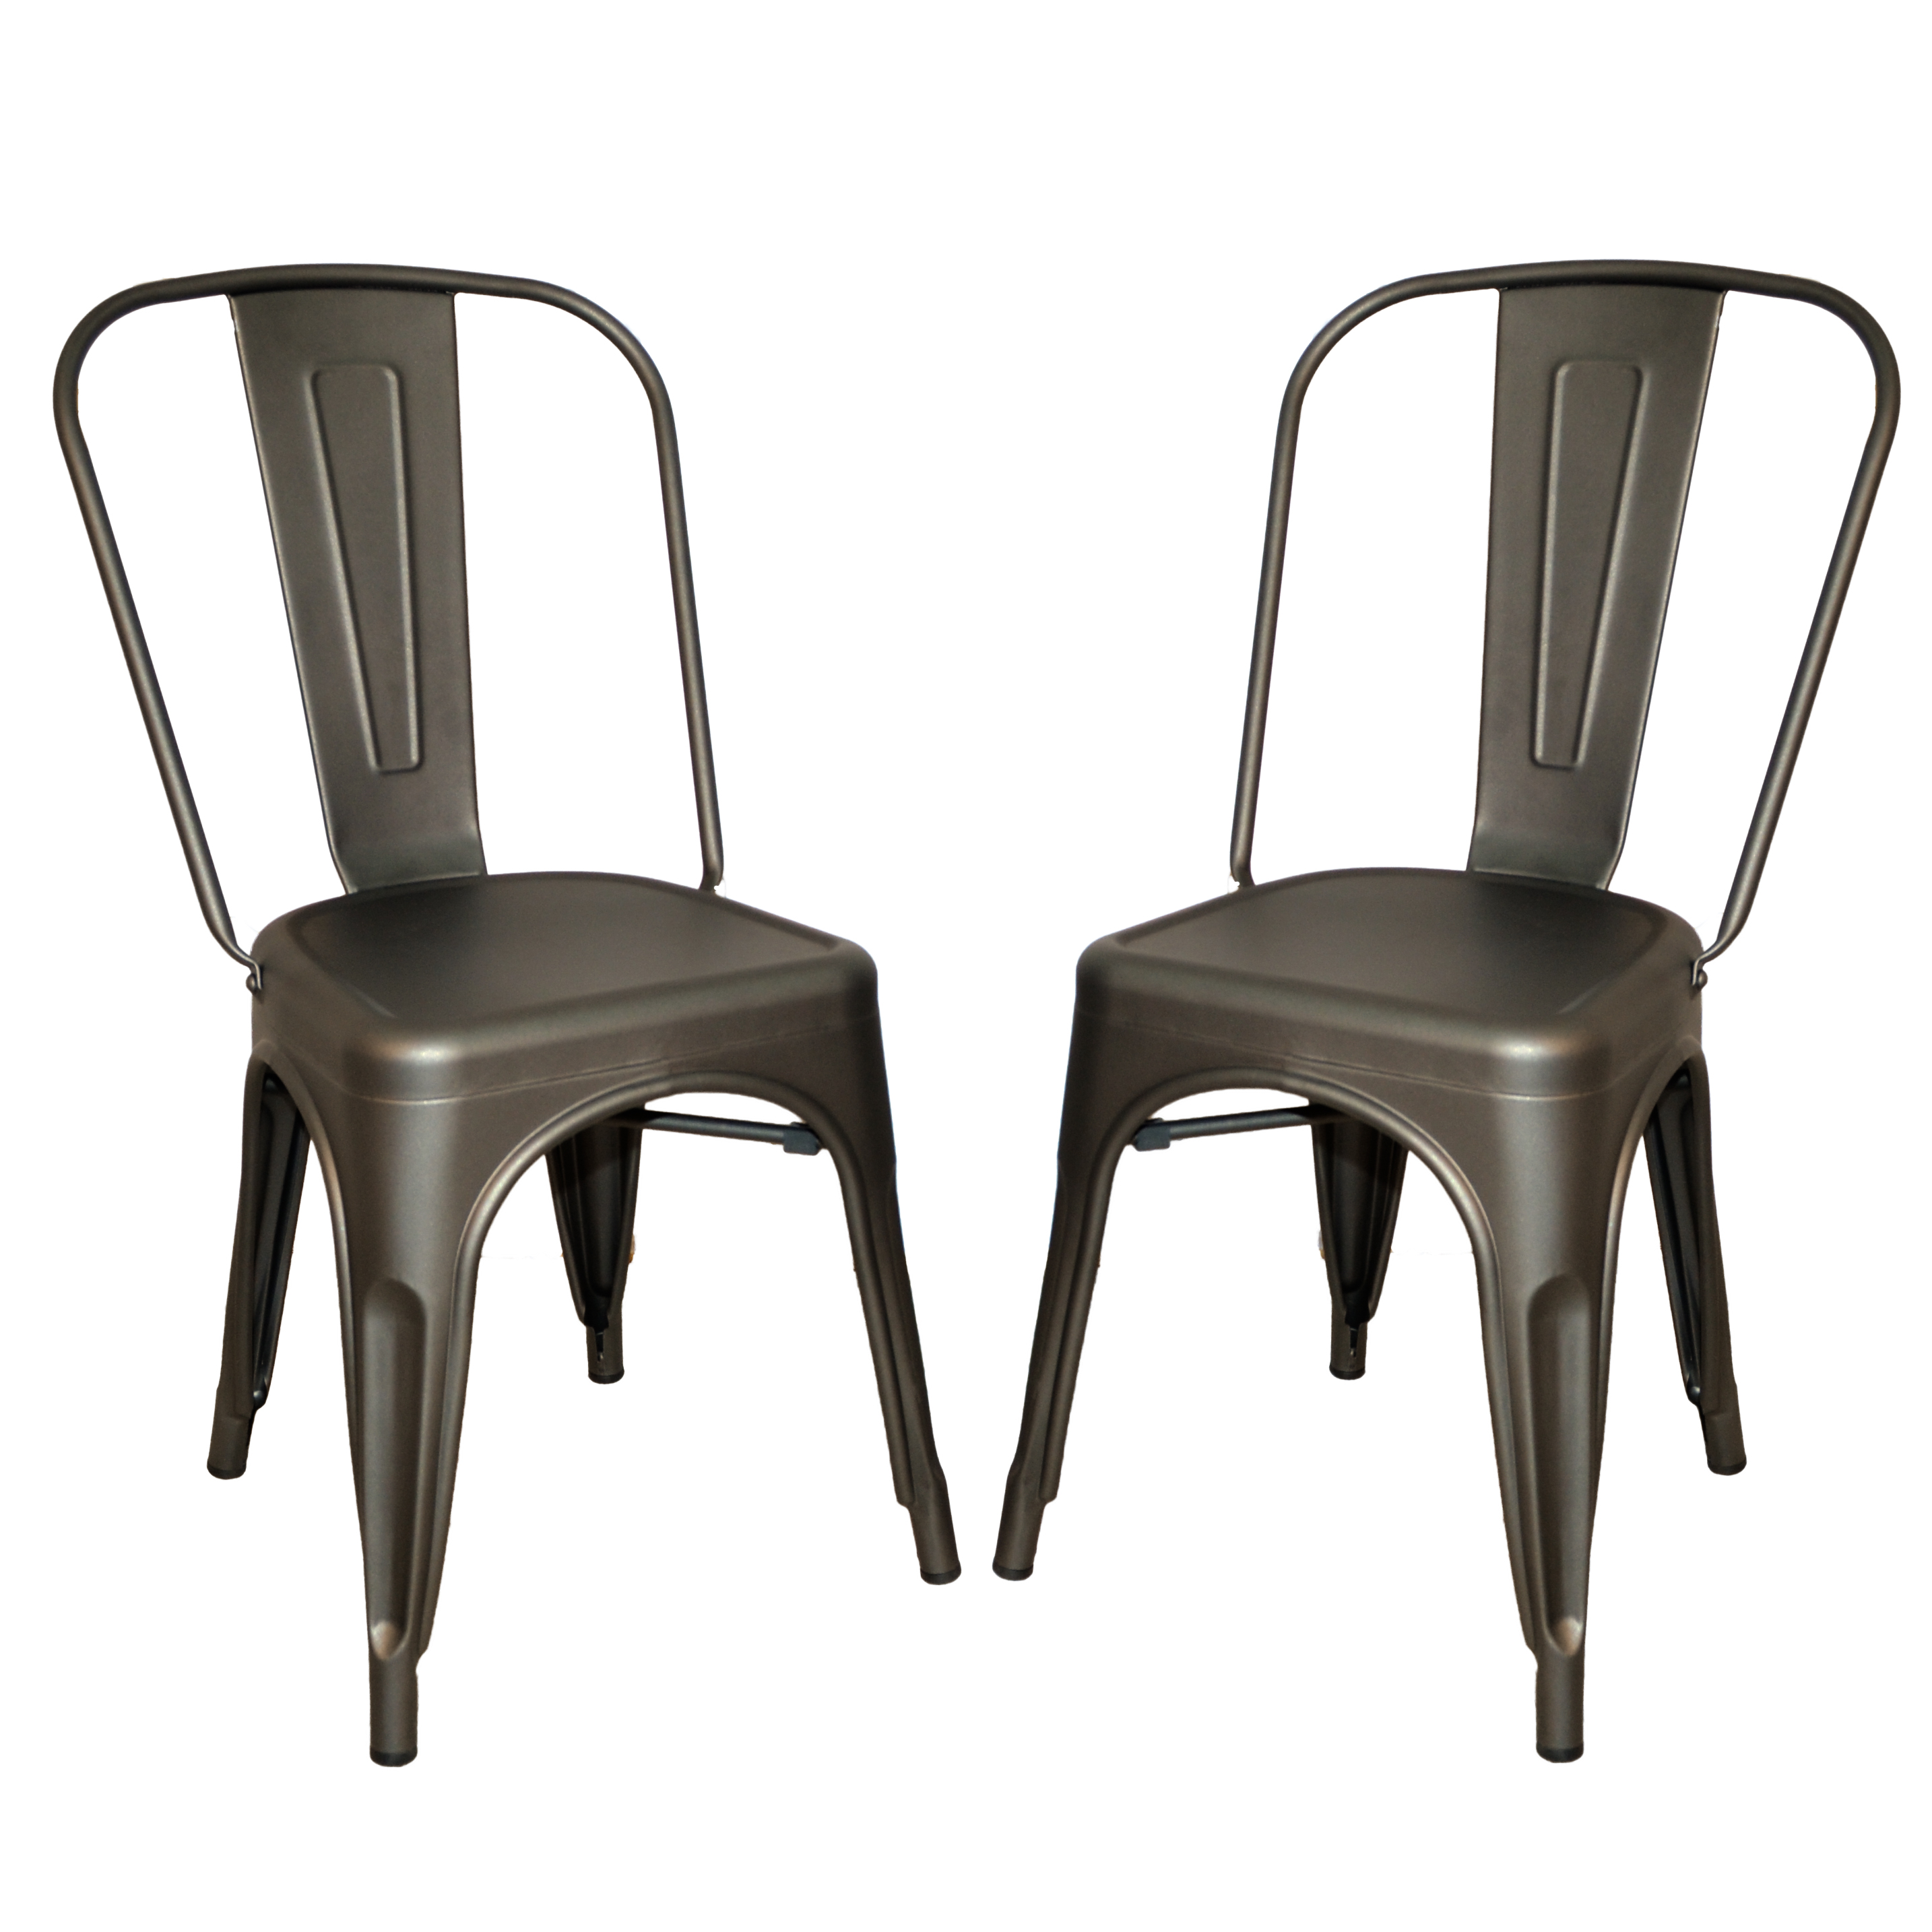 Adeline Metal Chair, Rustic Pewter